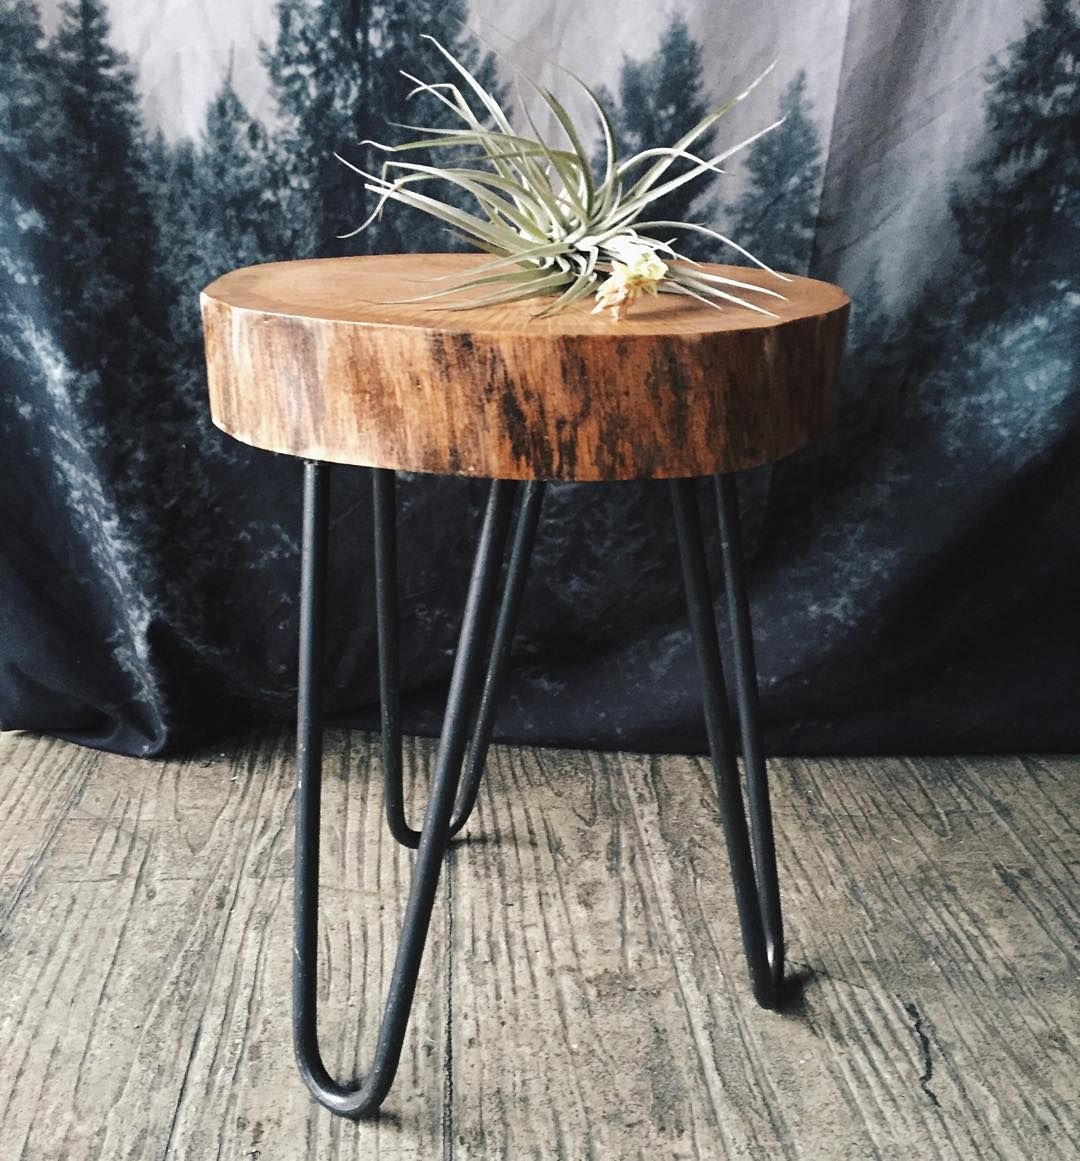 Camp Hunt Camphunt Co Chicago Reclaimed Salvaged Wood Stump Table With Metal Hairpin Leg